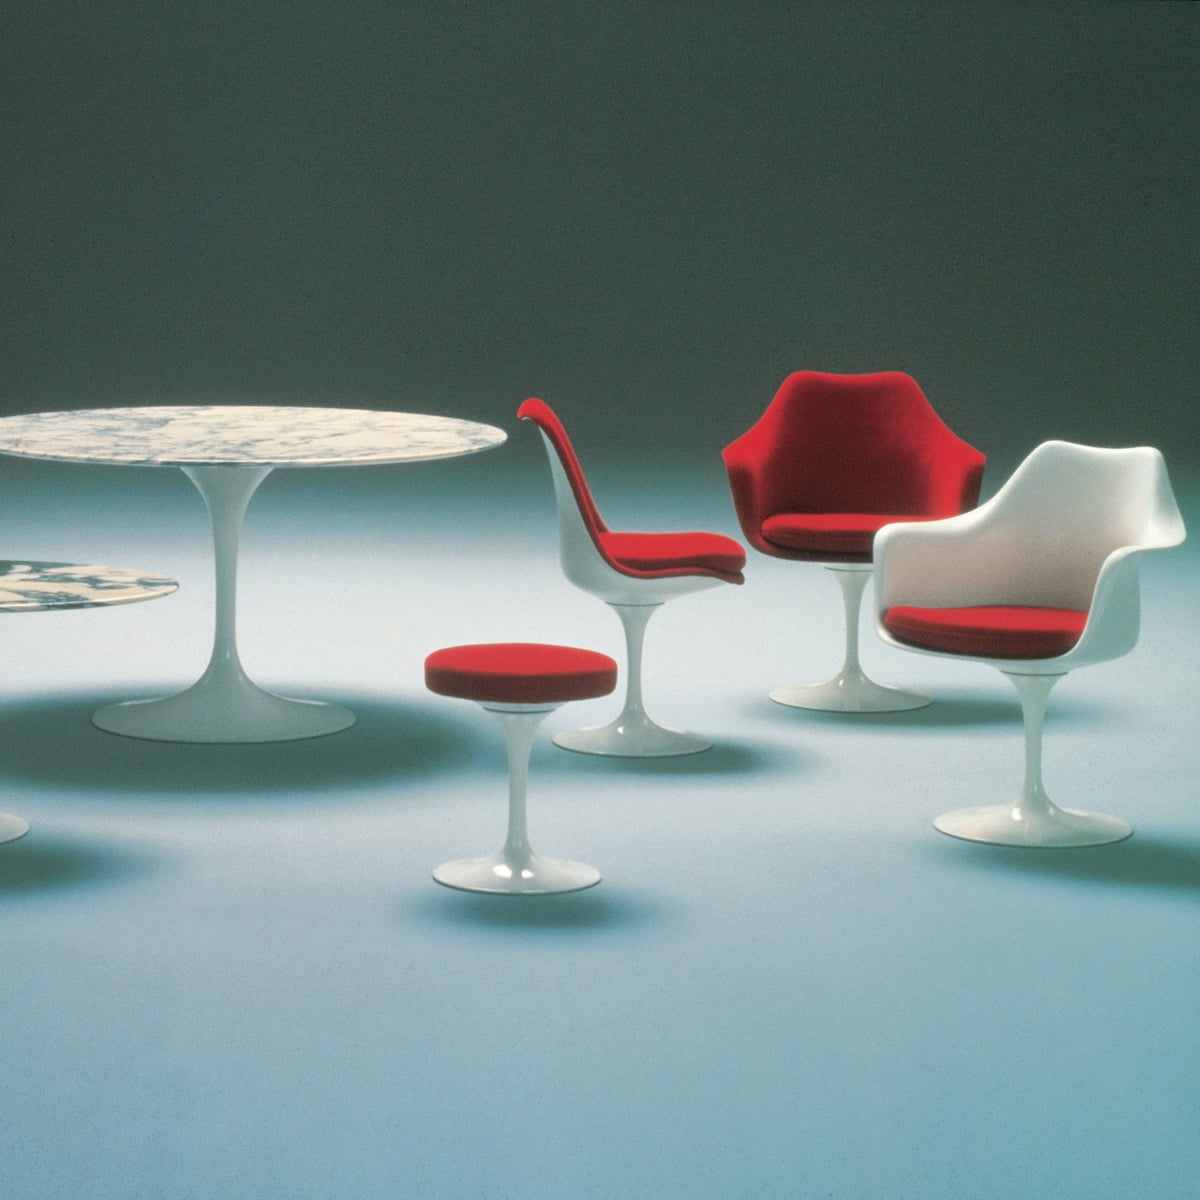 The Saarinen Tulip Stool From Knoll - Knoll tulip table and chairs